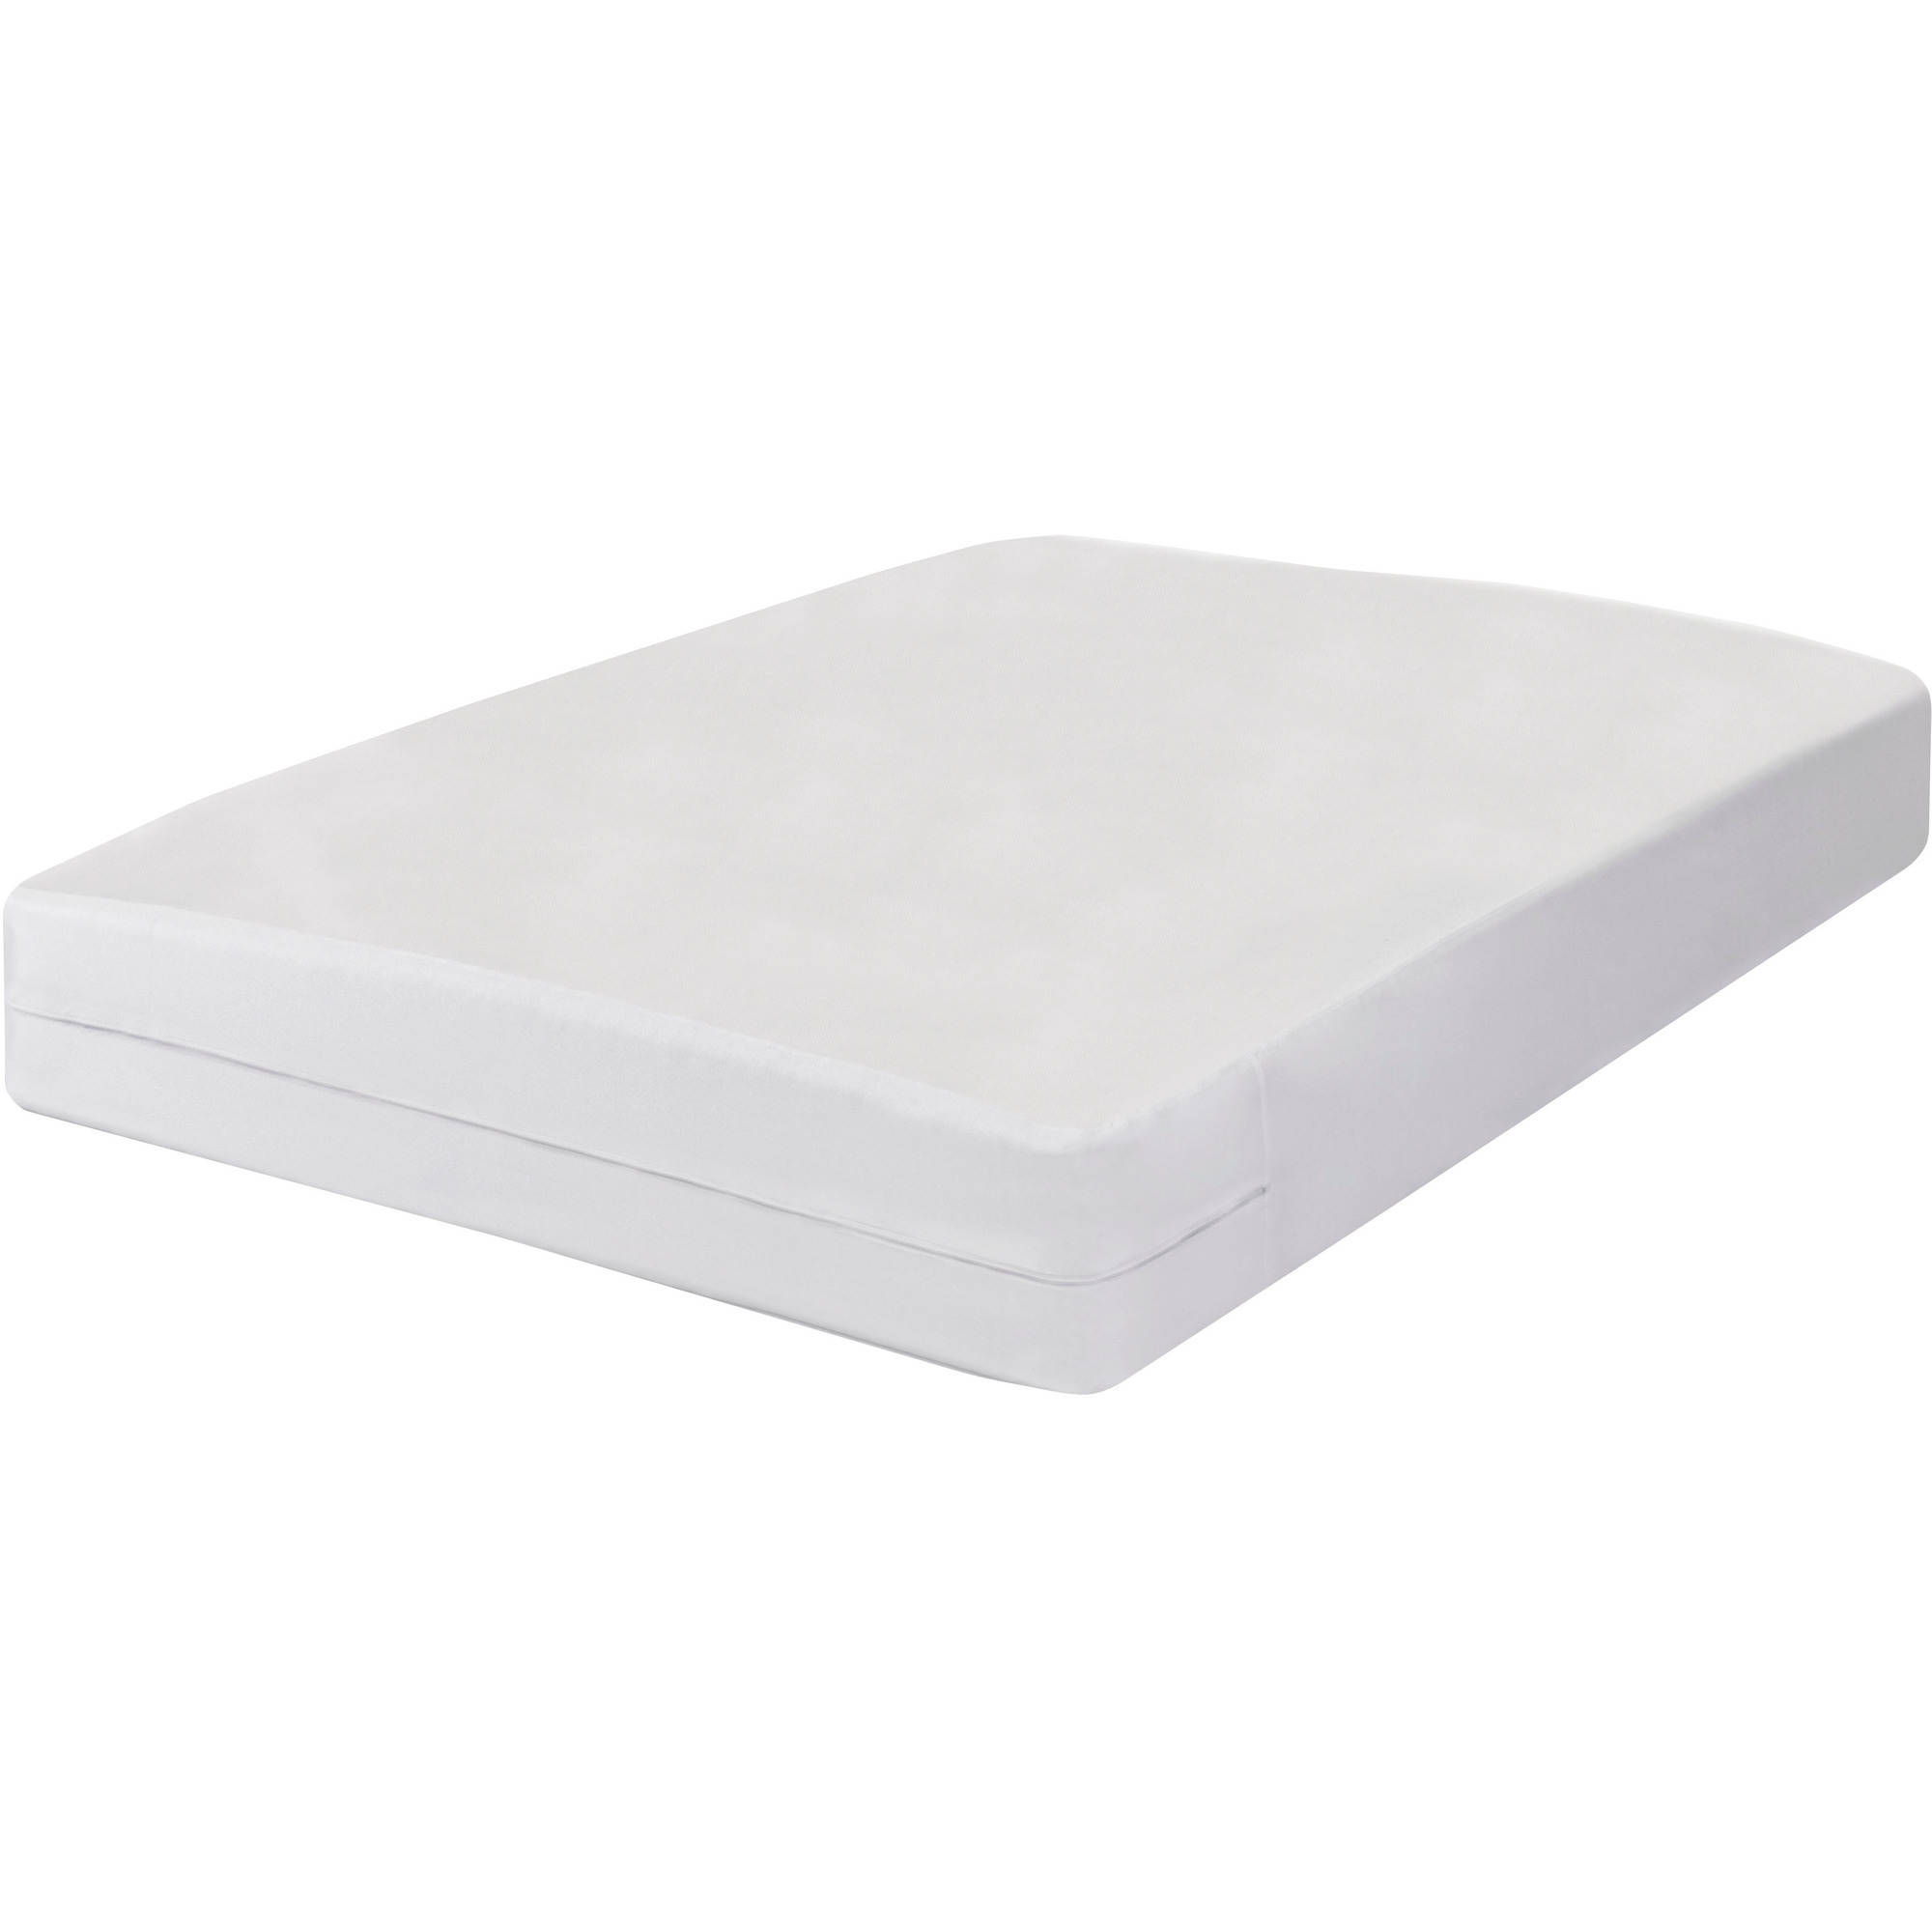 Original Bed Bug Blocker Zippered Mattress Protector Walmart